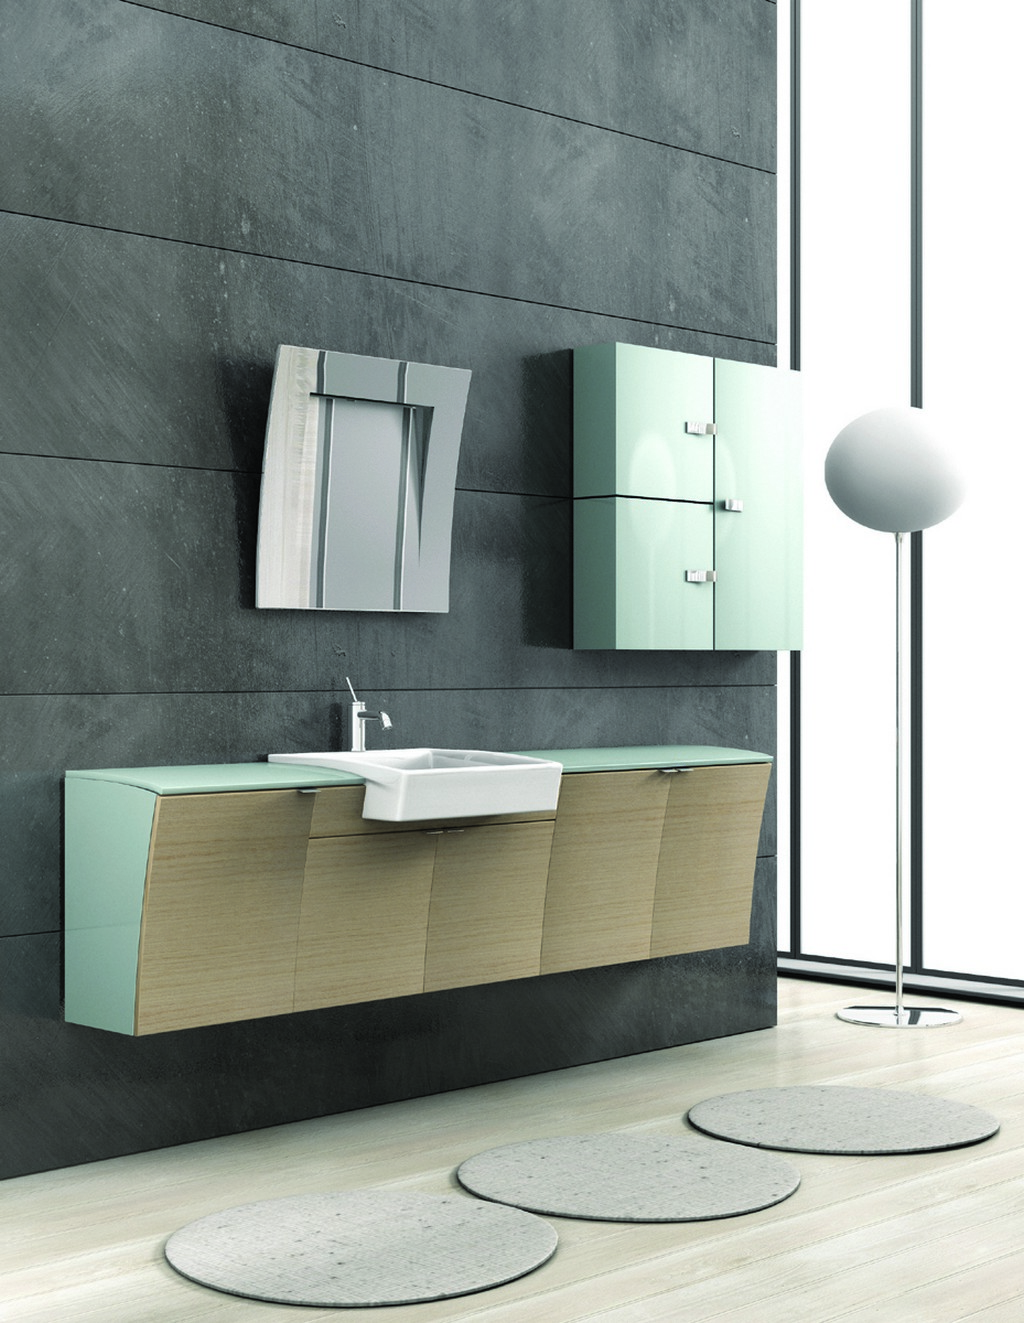 Perfect Thanks To Great Variety Of Available Images You Could Find Tiles That Reflect Your Own Style And Taste For Fans Of Abstract And Optical Patterns Glassdecor Offers 3D Range, Which Perfectly Fit To Ultra Modern Bathrooms For More Traditional